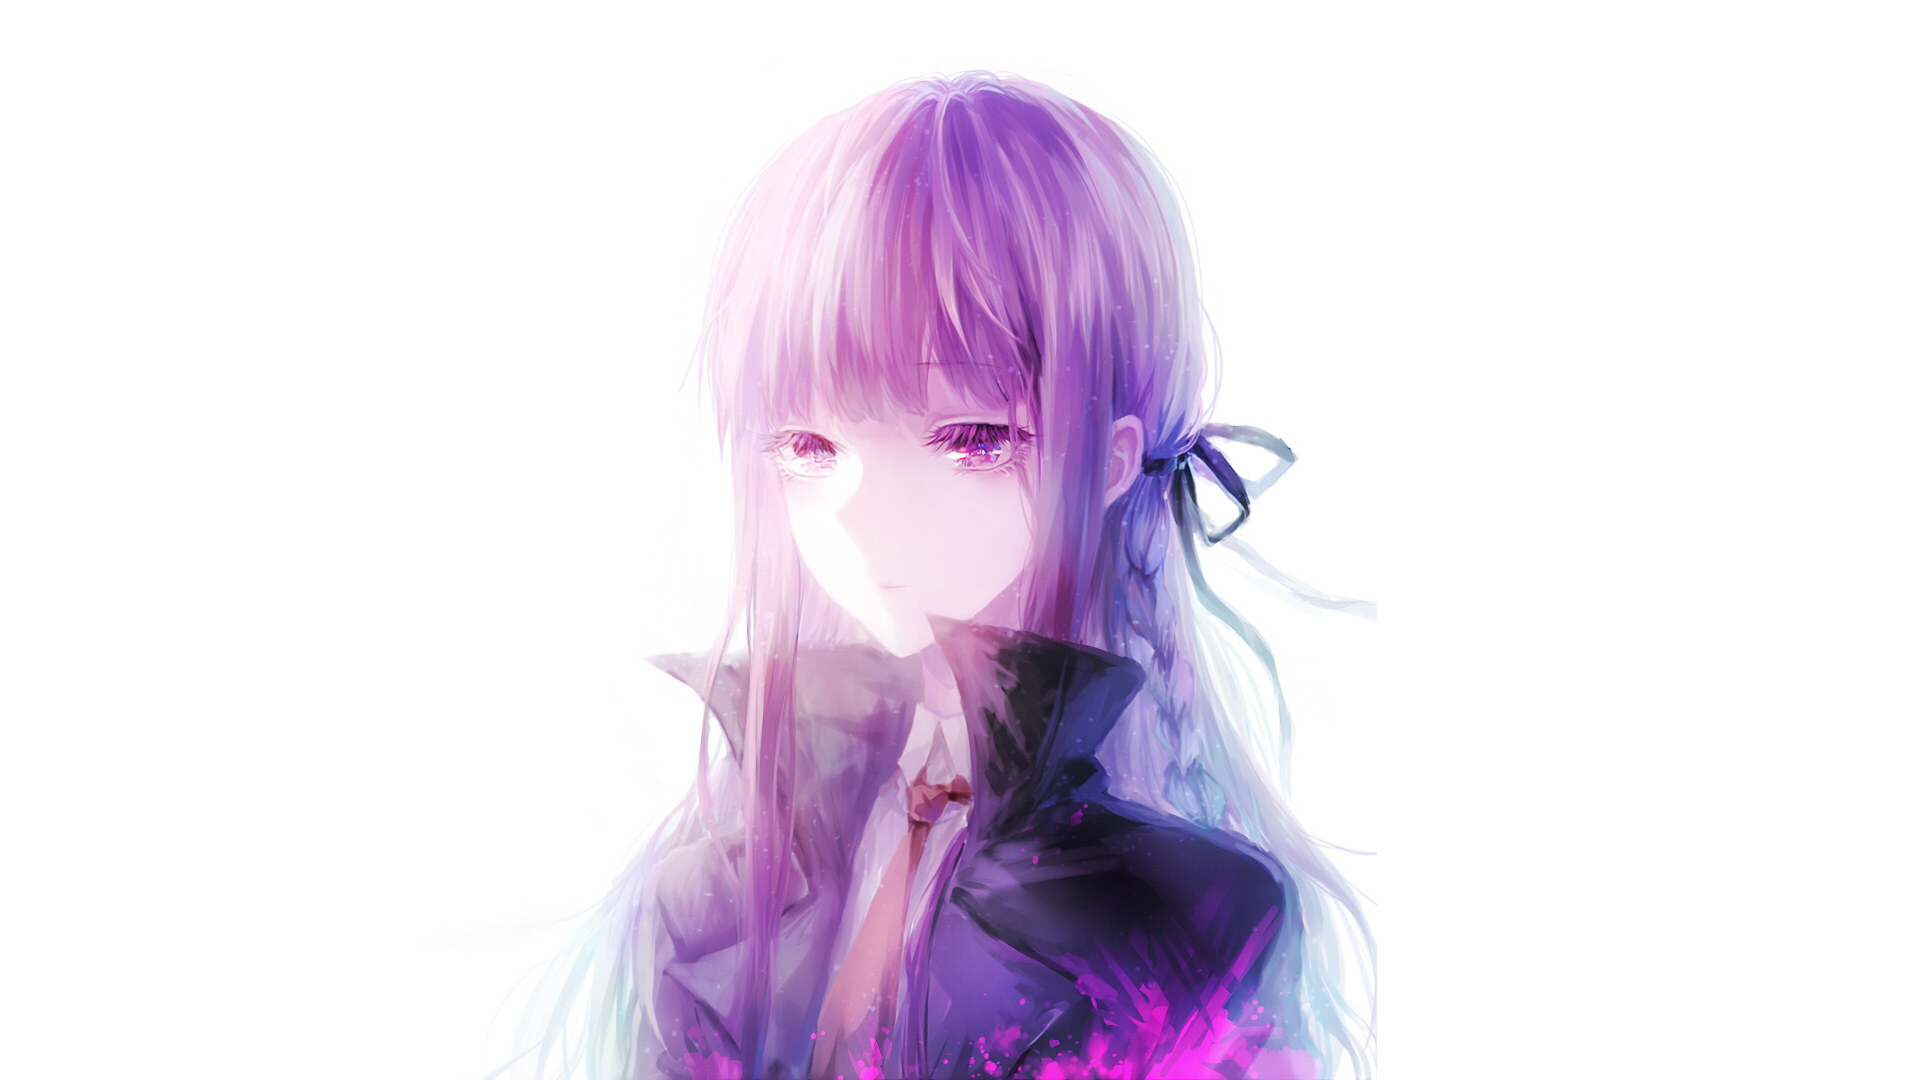 kirigiri kyouko full hd wallpaper and background image